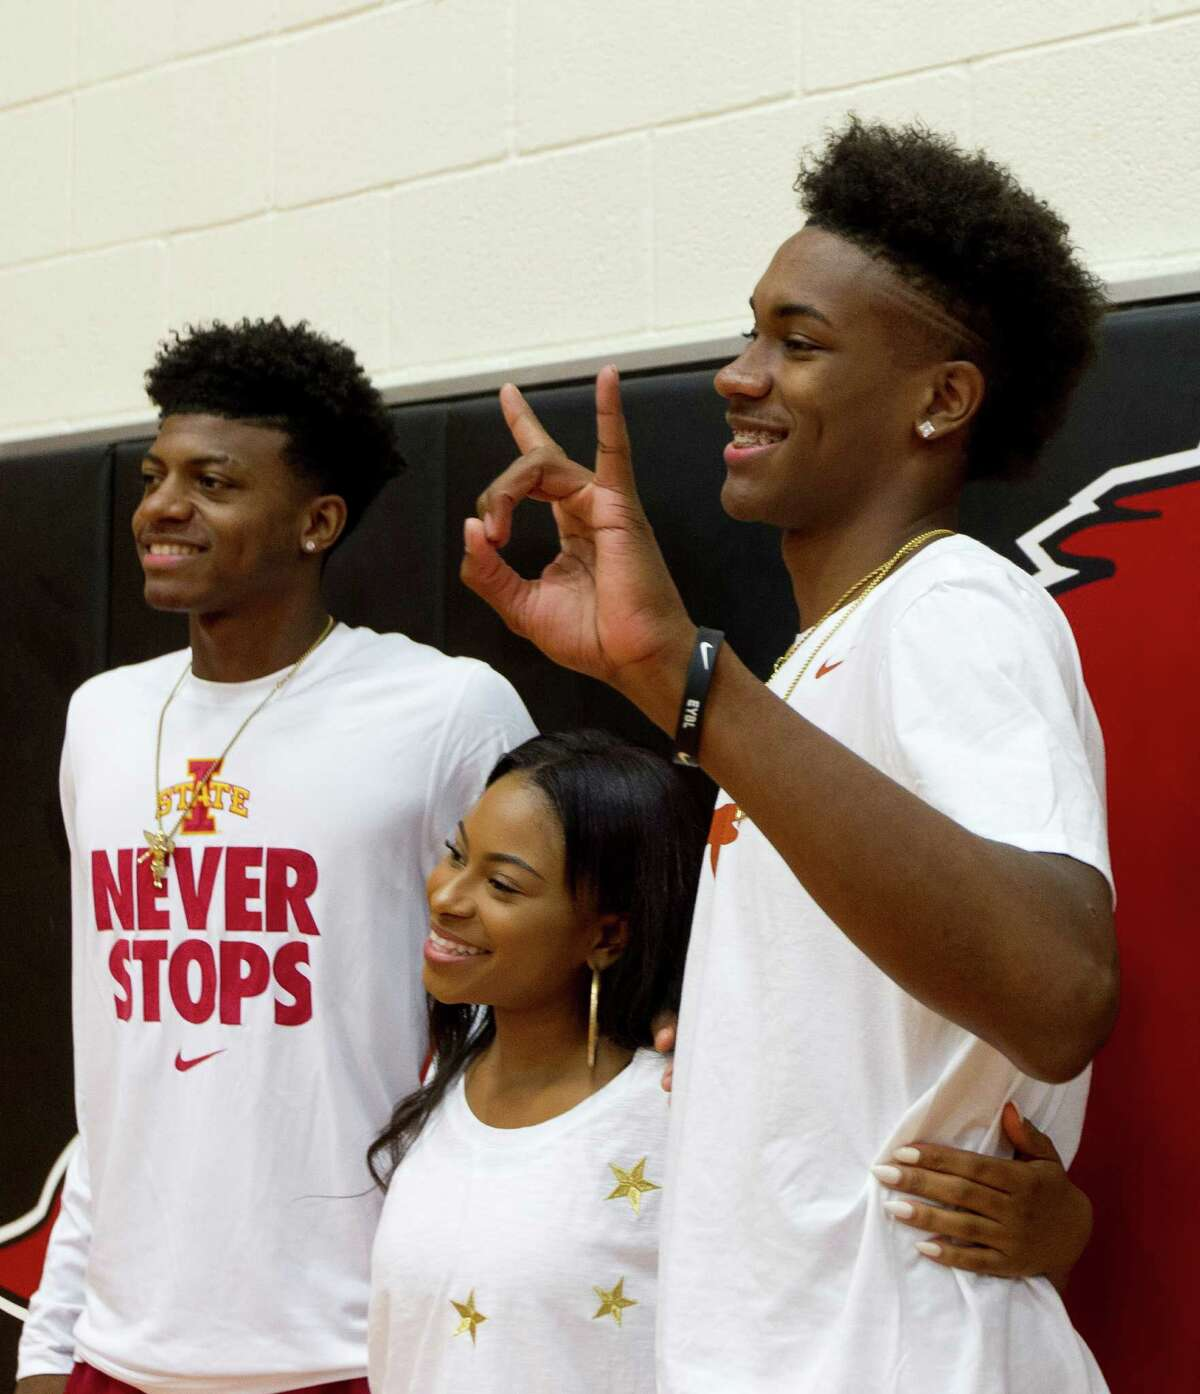 Westfield basketball players Darius McNeil, left, and Jase Febres pose with friends during a national signing day ceremony at Westfield High School Wednesday, Nov. 9, 2016, in Spring. McNeil signed to play basketball at Iowa State University, while Febres will play for the University of Texas.